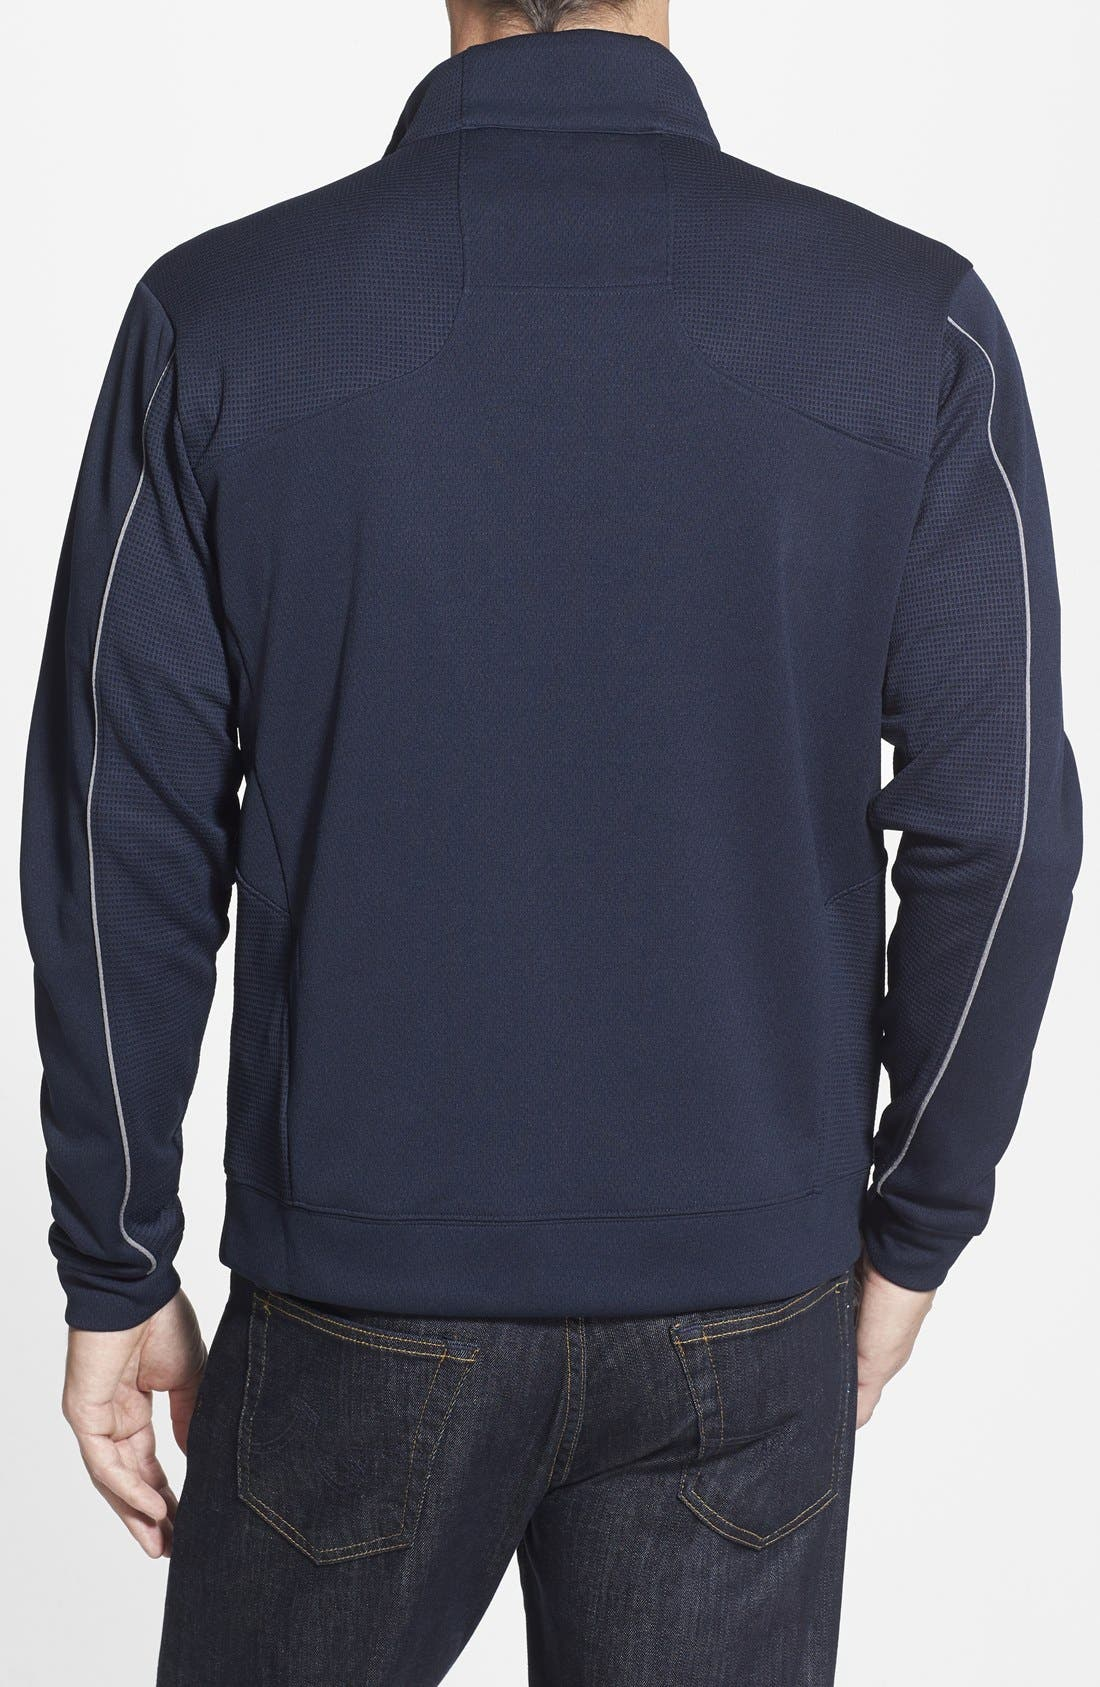 Los Angeles - Edge DryTec Moisture Wicking Half Zip Pullover,                             Alternate thumbnail 2, color,                             420